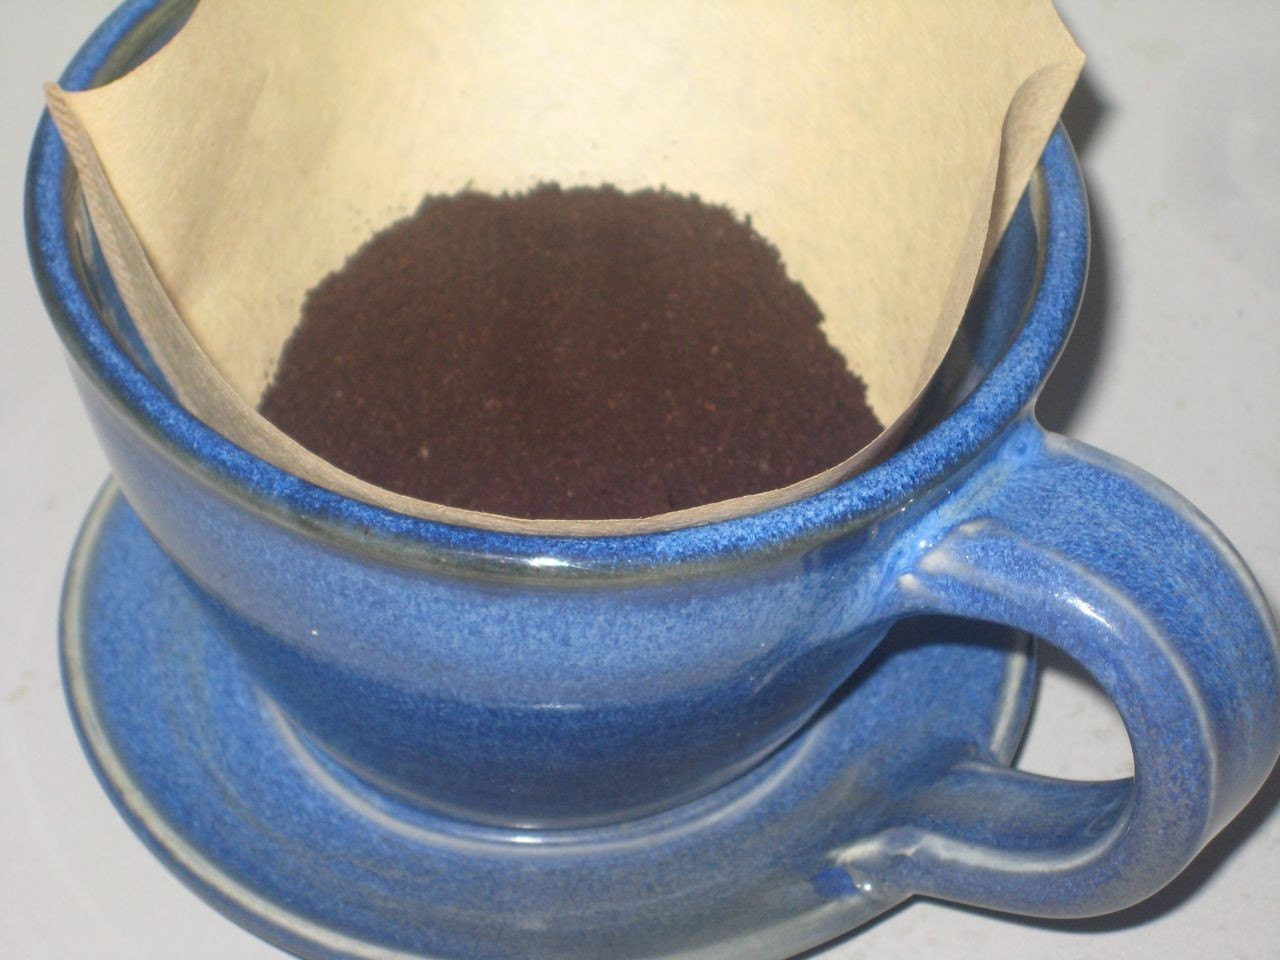 One Cup Ceramic Coffee Maker : Single cup Ceramic Coffee Maker by andersenpottery on Etsy